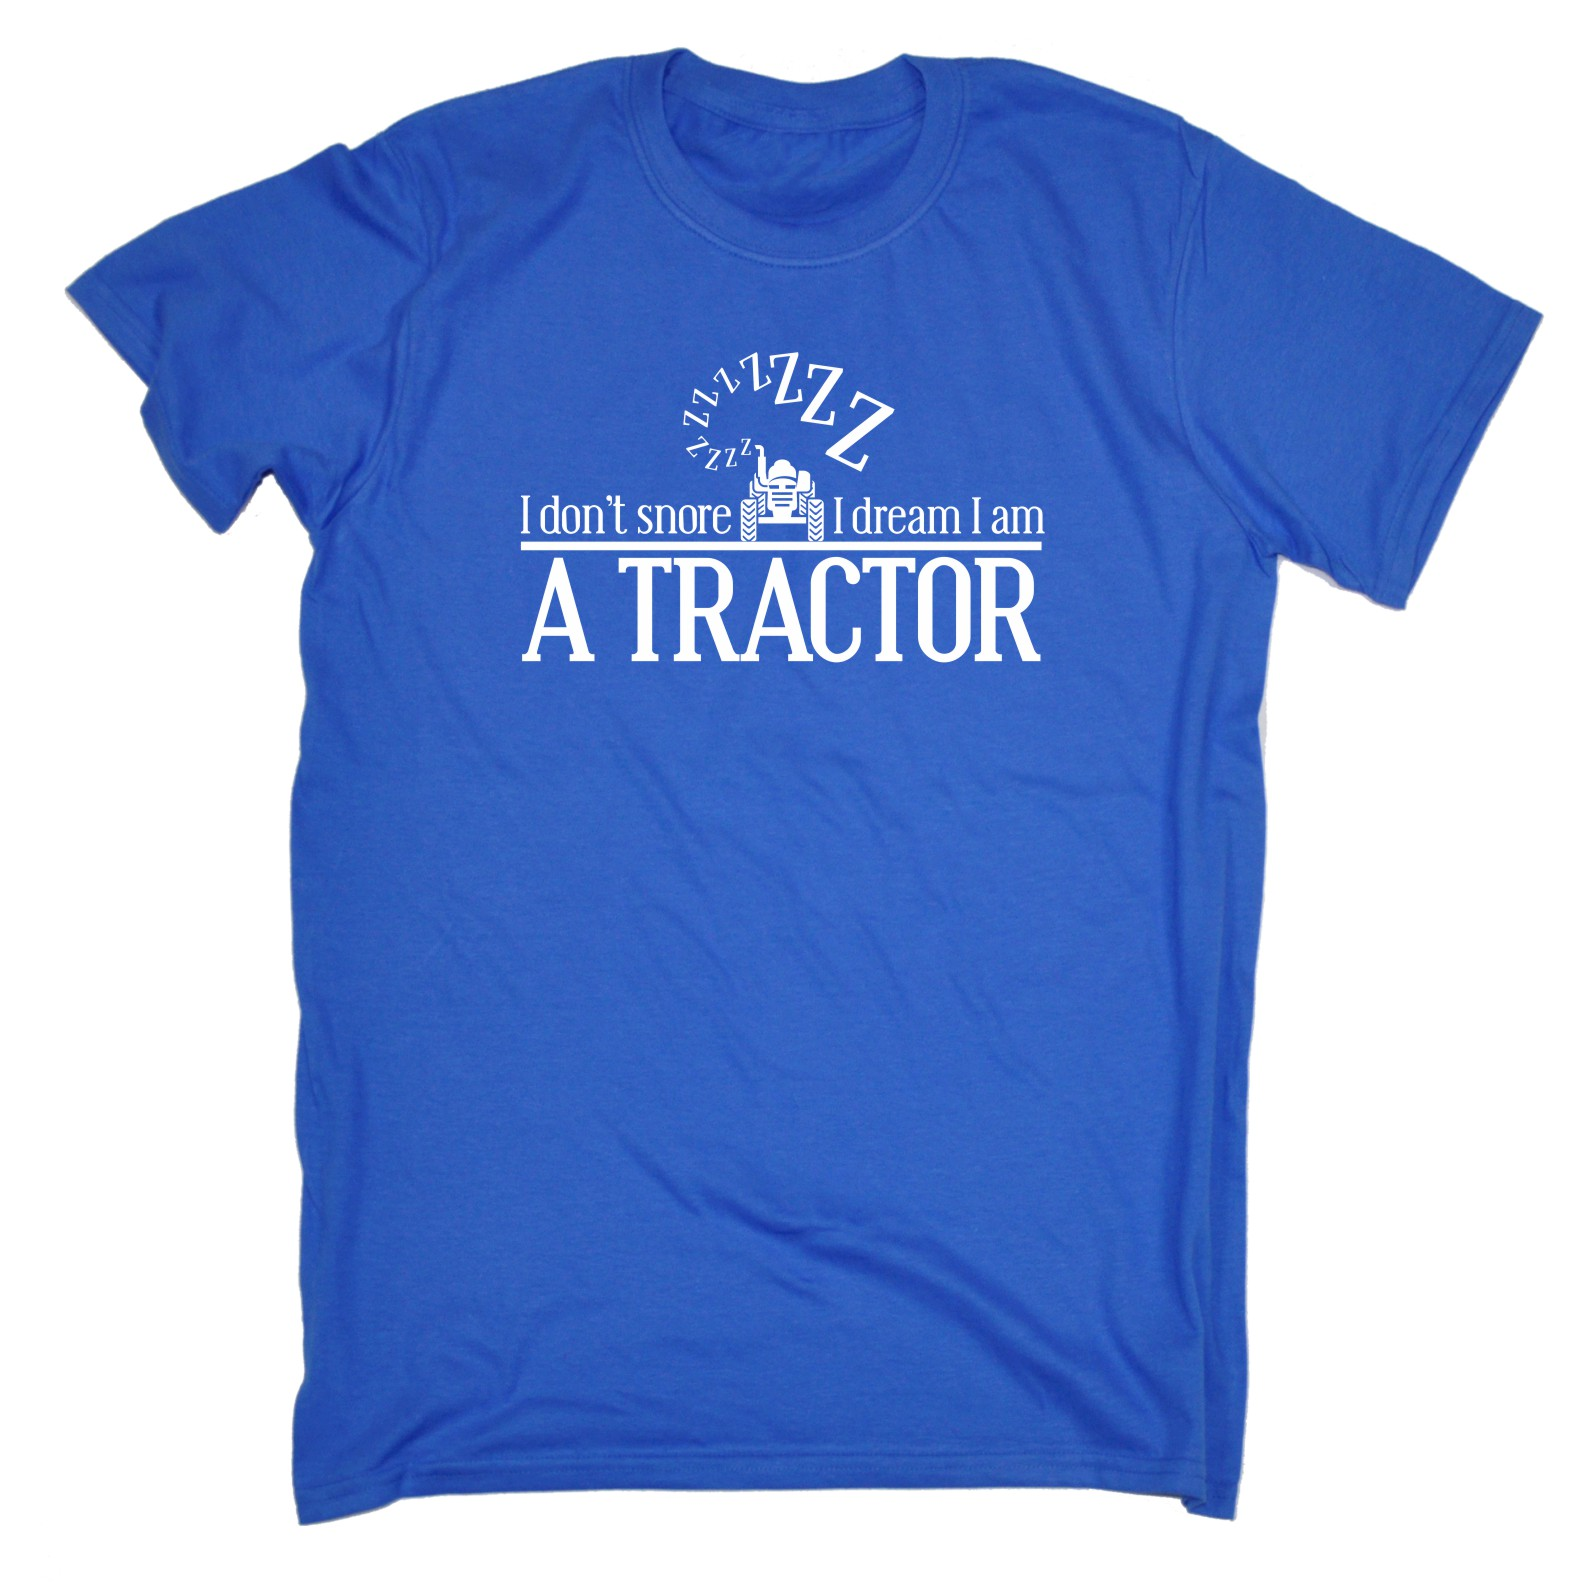 Co Op Tractor Pulling T Shirt : I dont snore dream am a tractor funny joke farmer